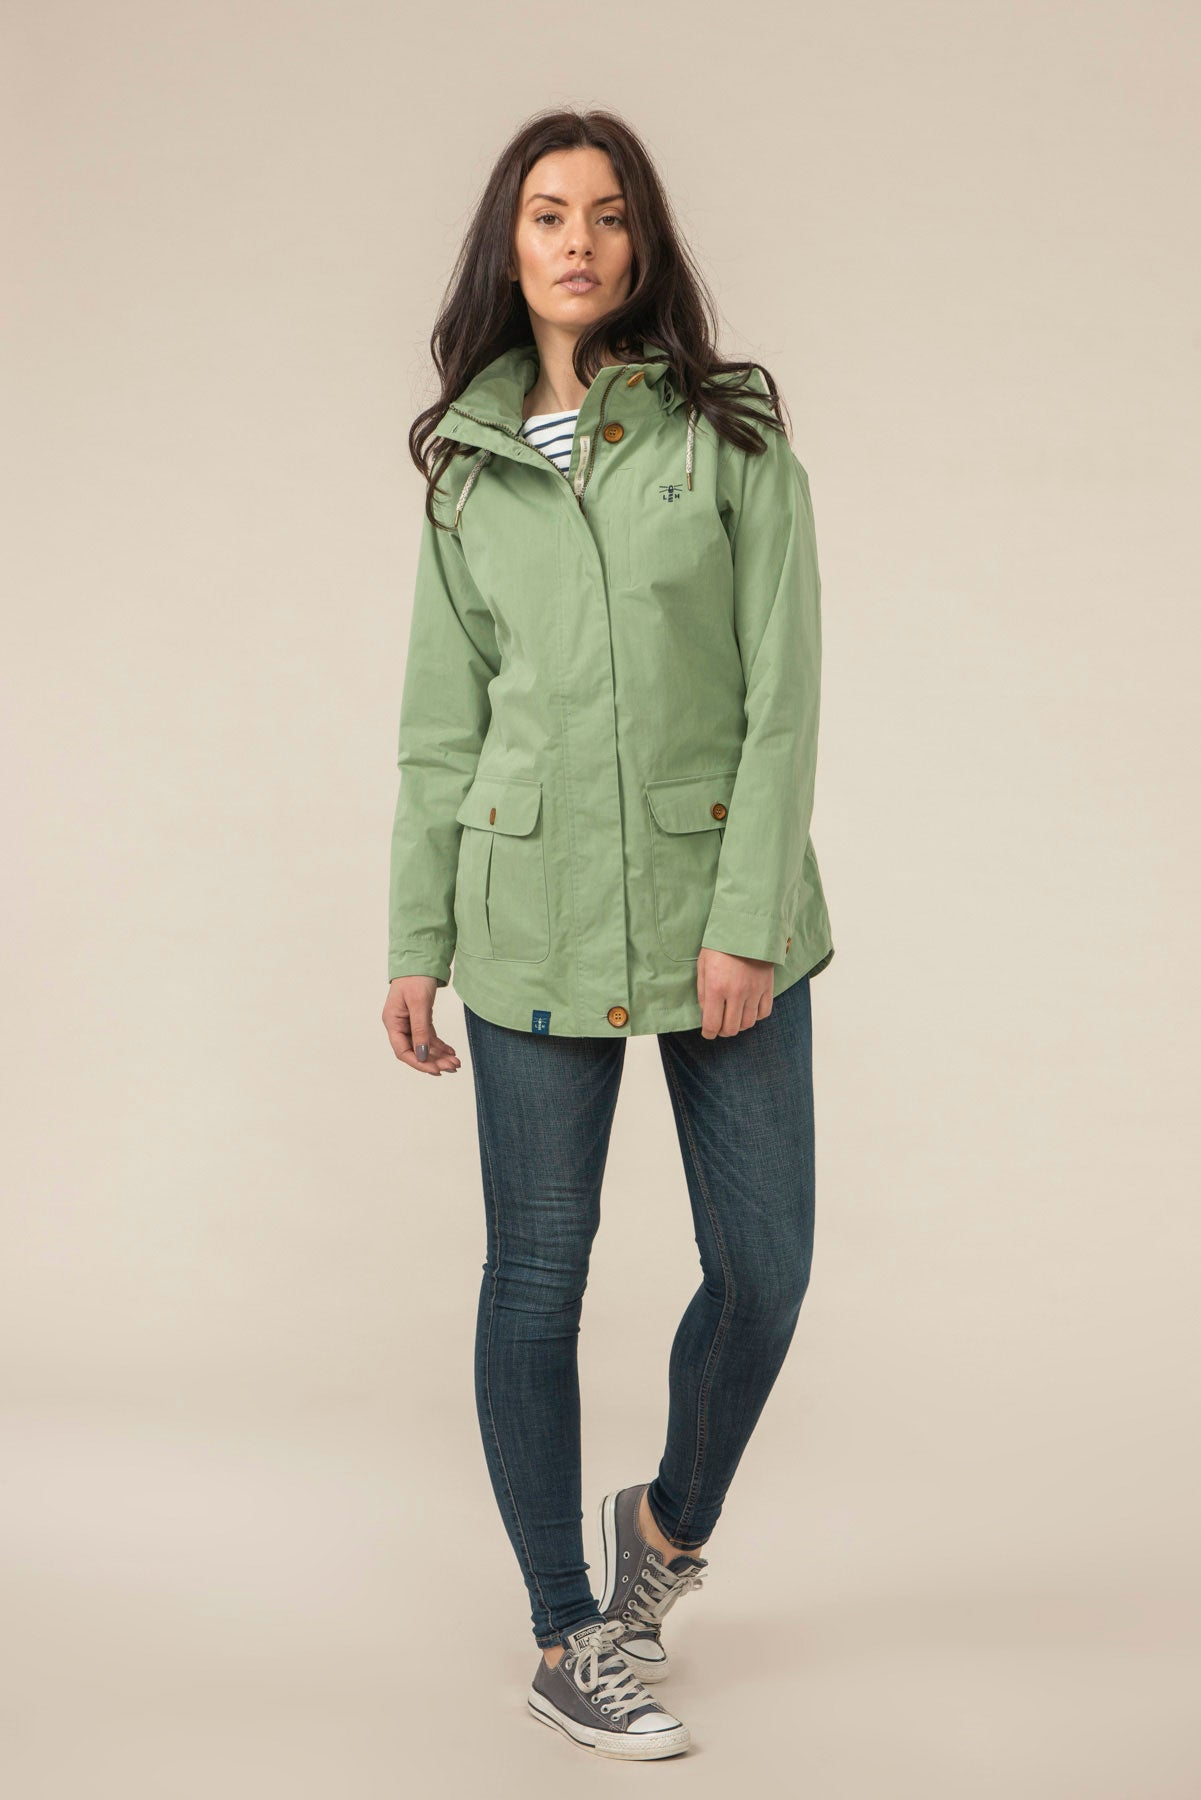 Women's Coats - Tori - Green Raincoat